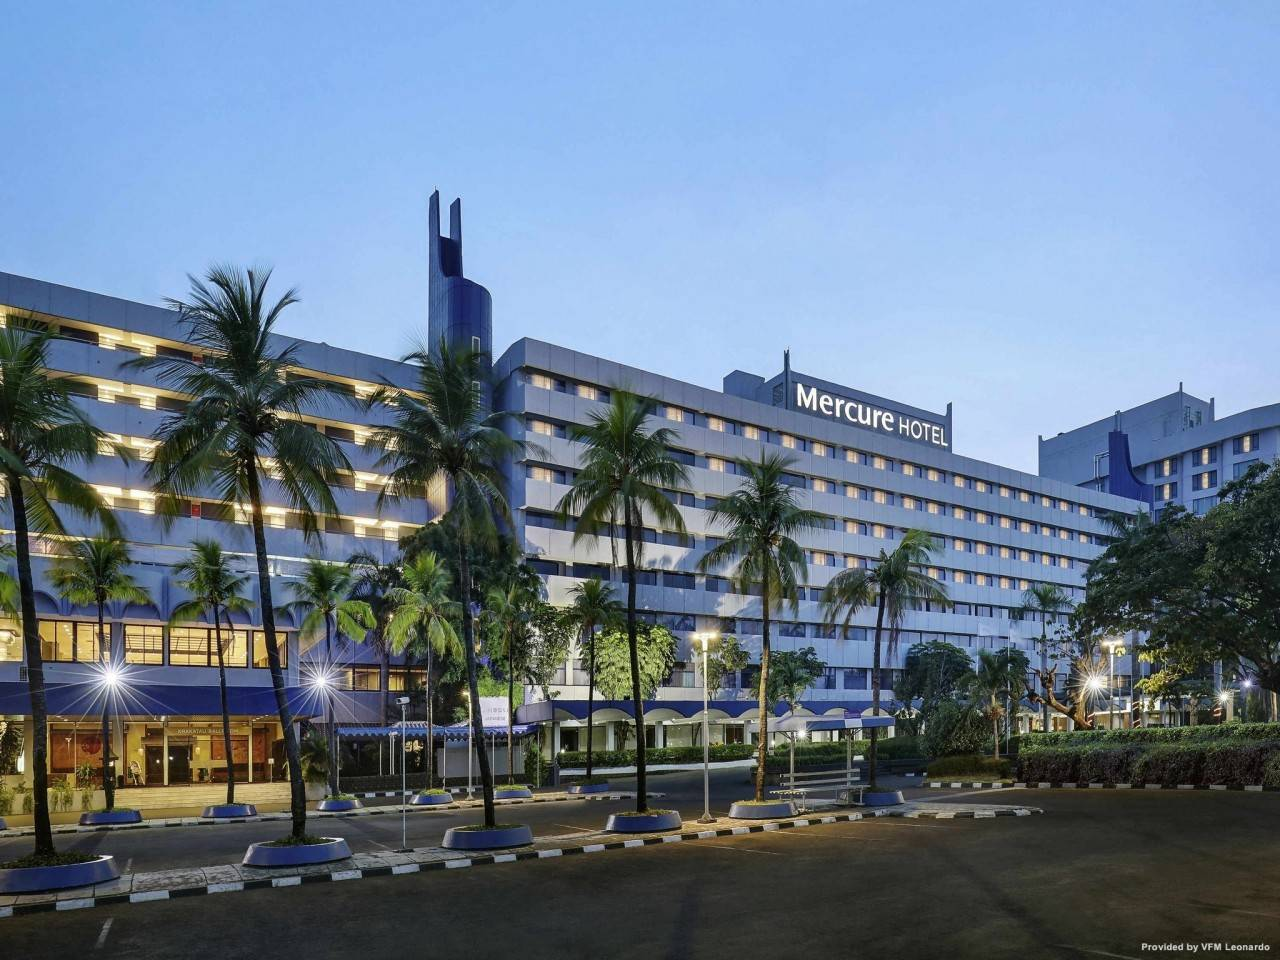 Hotel Mercure Convention Center Ancol 4 Hrs Star Hotel In Jakarta